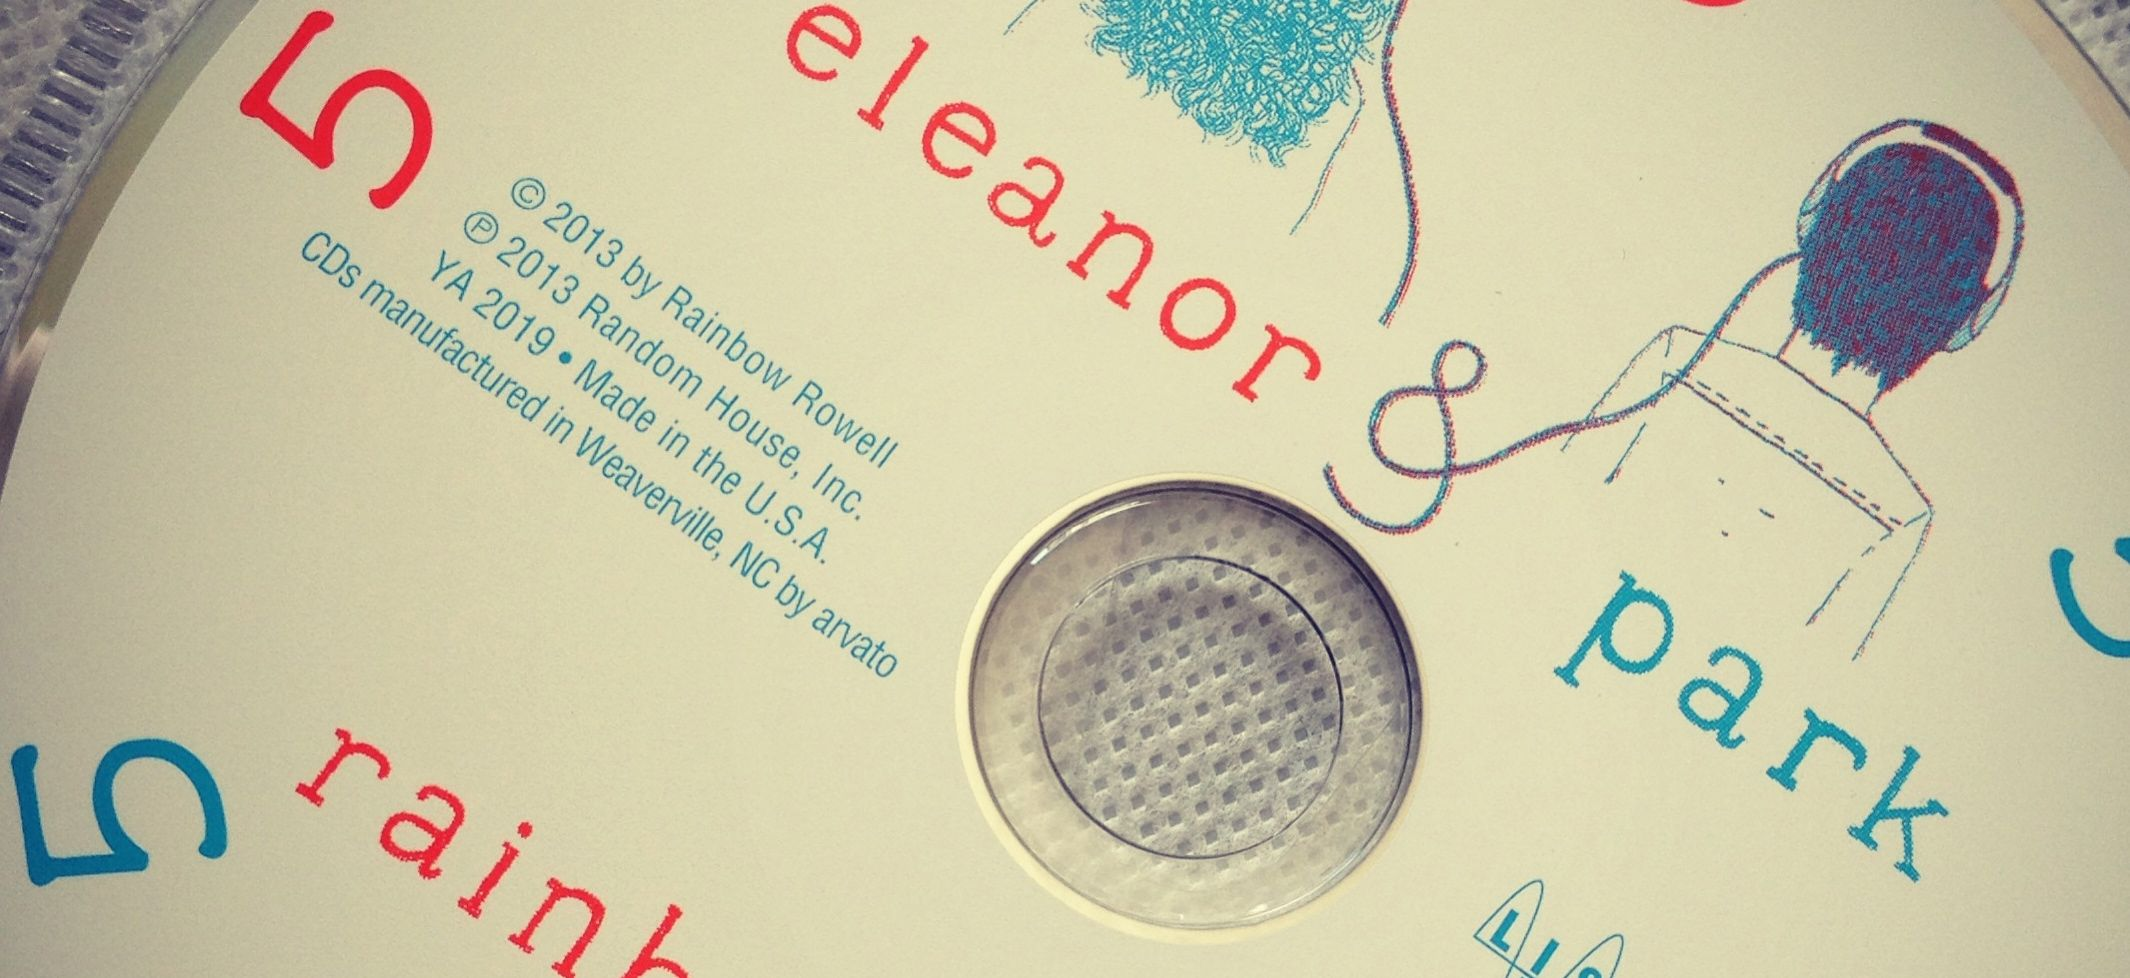 CD Cover for the Playlist for the Book Eleanor and Park